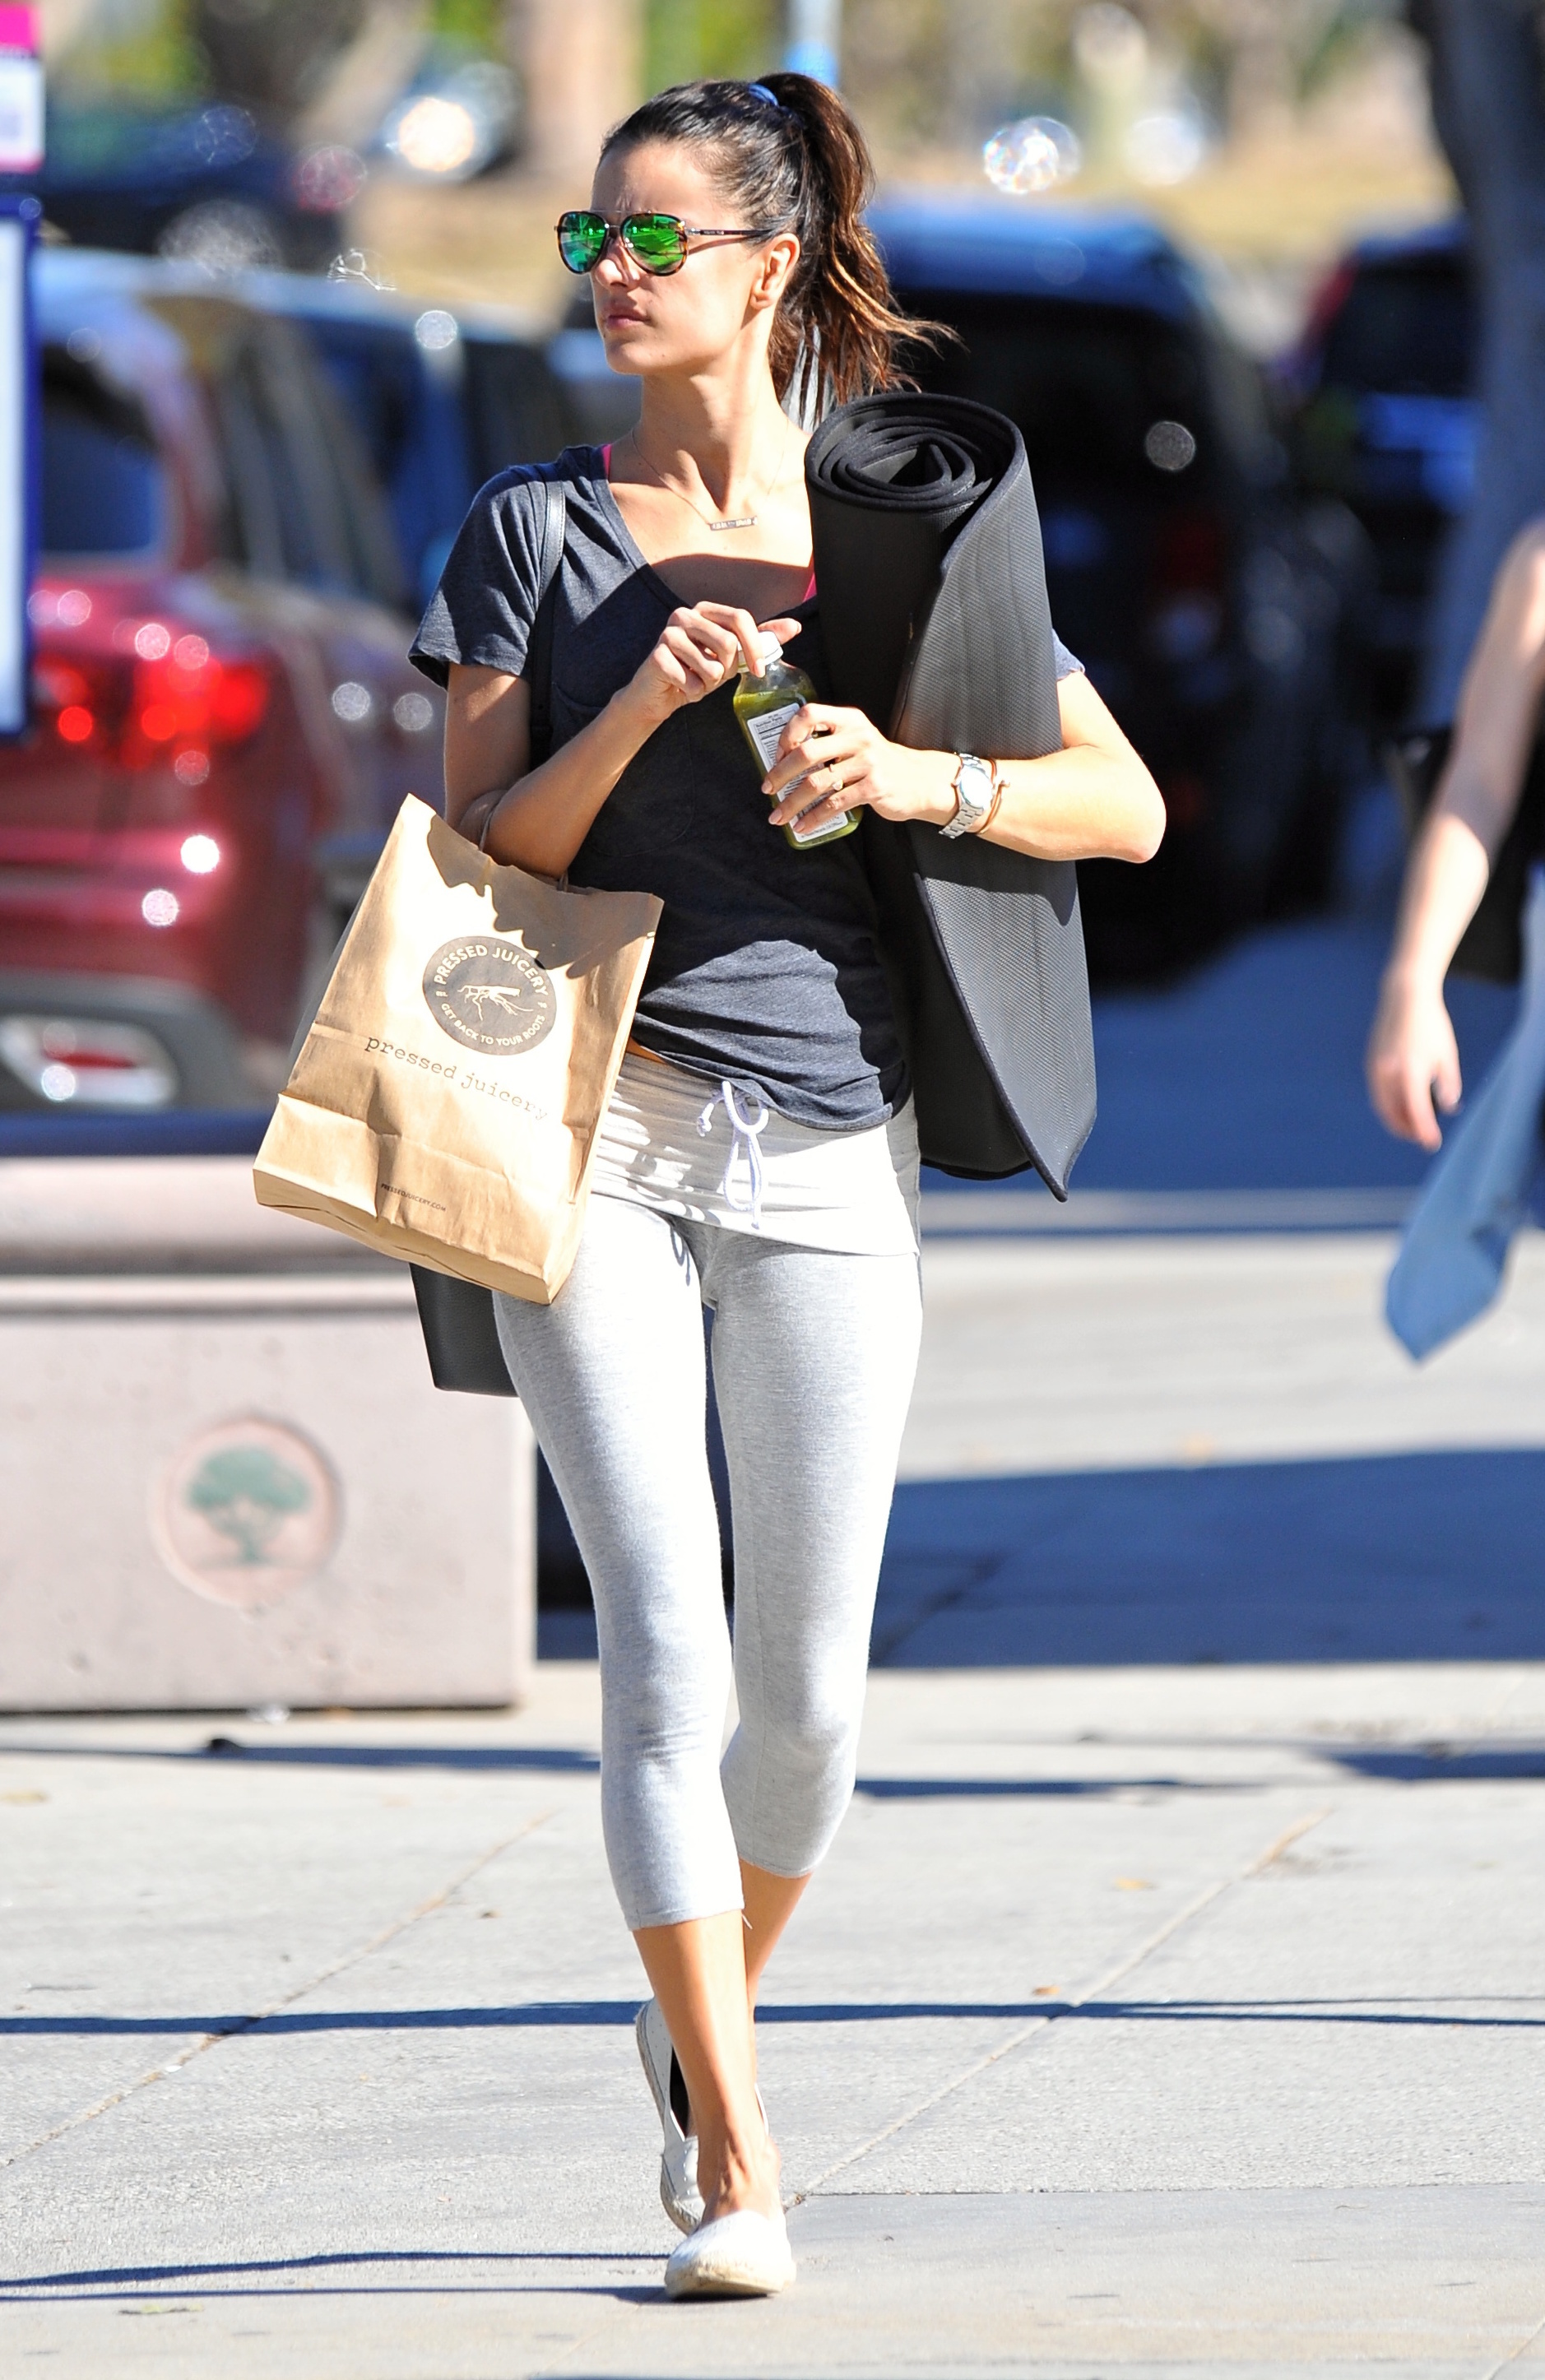 Alessandra Ambrosio leaves a yoga class                                    Featuring: Alessandra Ambrosio                  Where: Los Angeles, California, United States                  When: 21 Nov 2015                  Credit: WENN.com